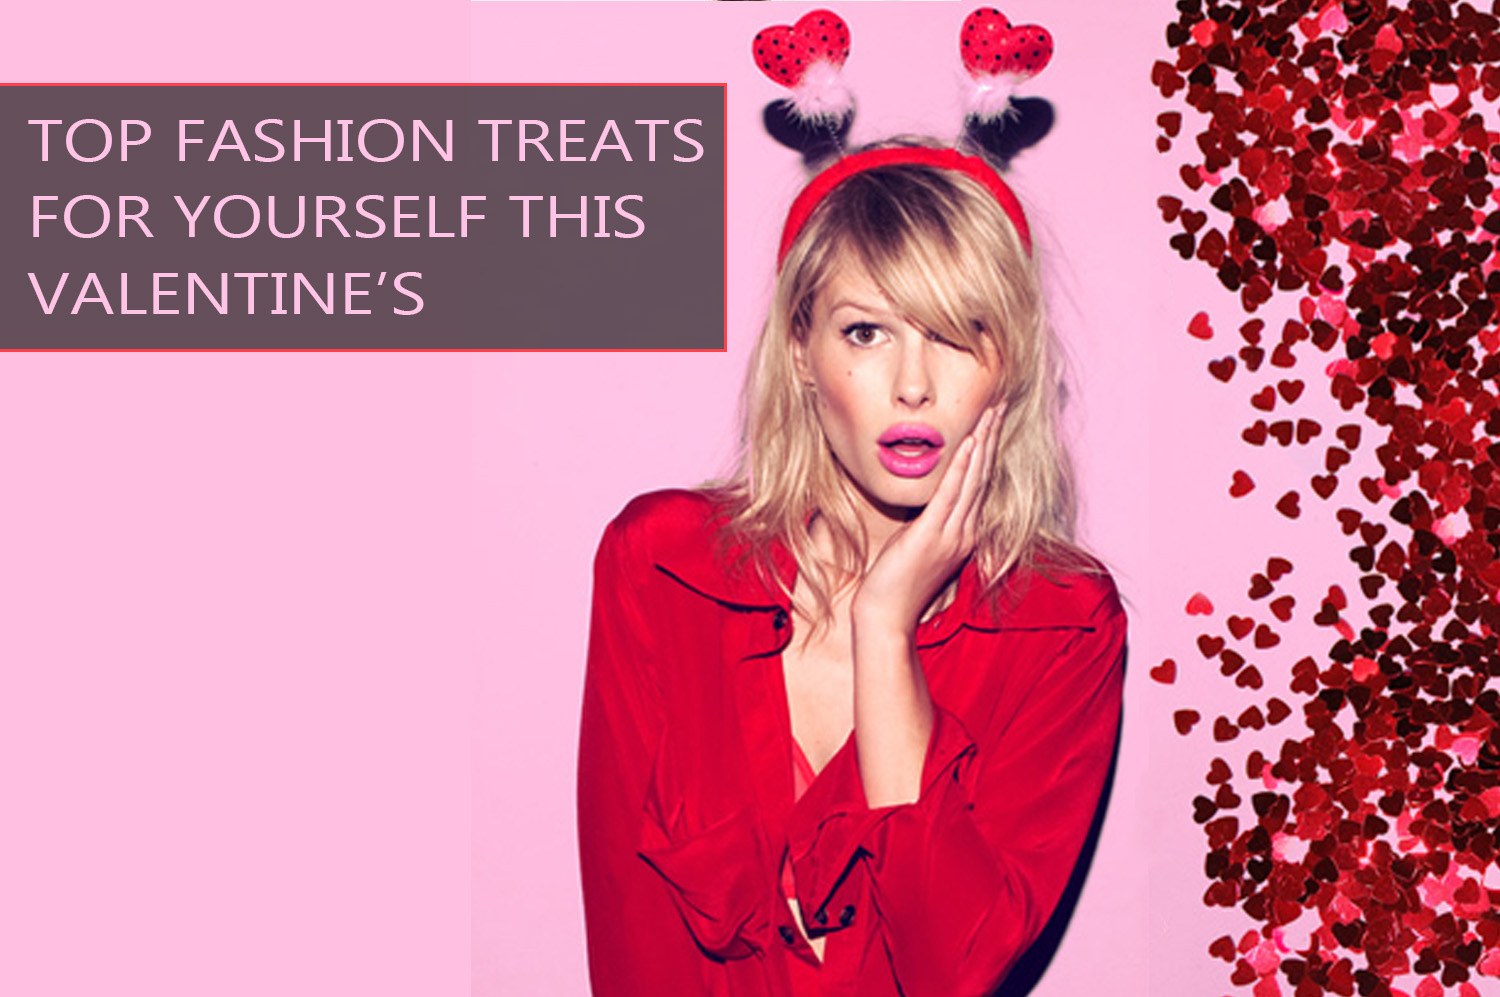 Top Fashion Treats for yourself this Valentine's